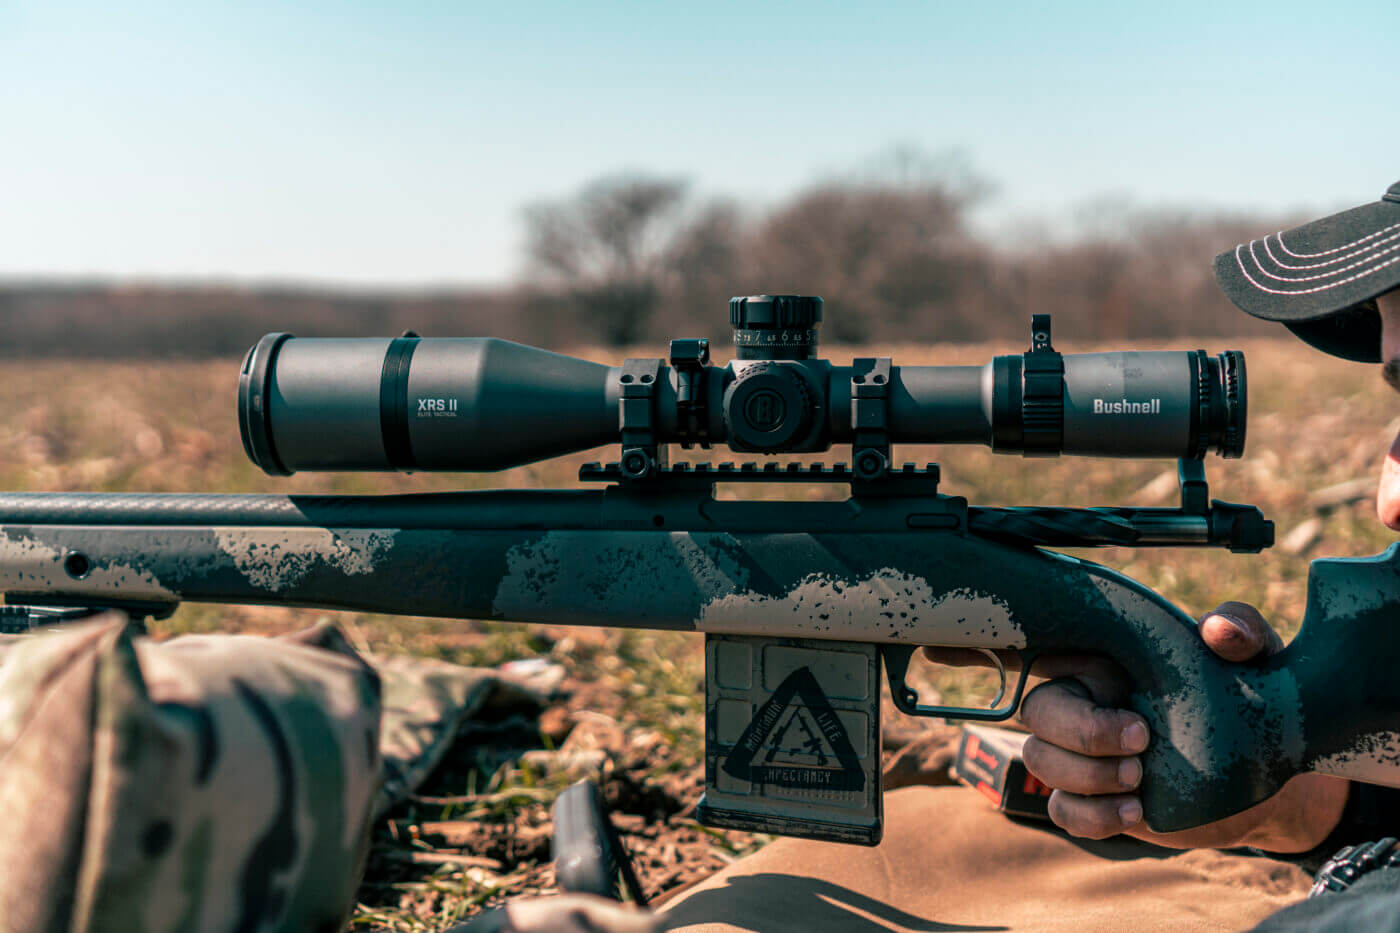 Bushnell Elite Tactical XRS II scope on a Springfield rifle